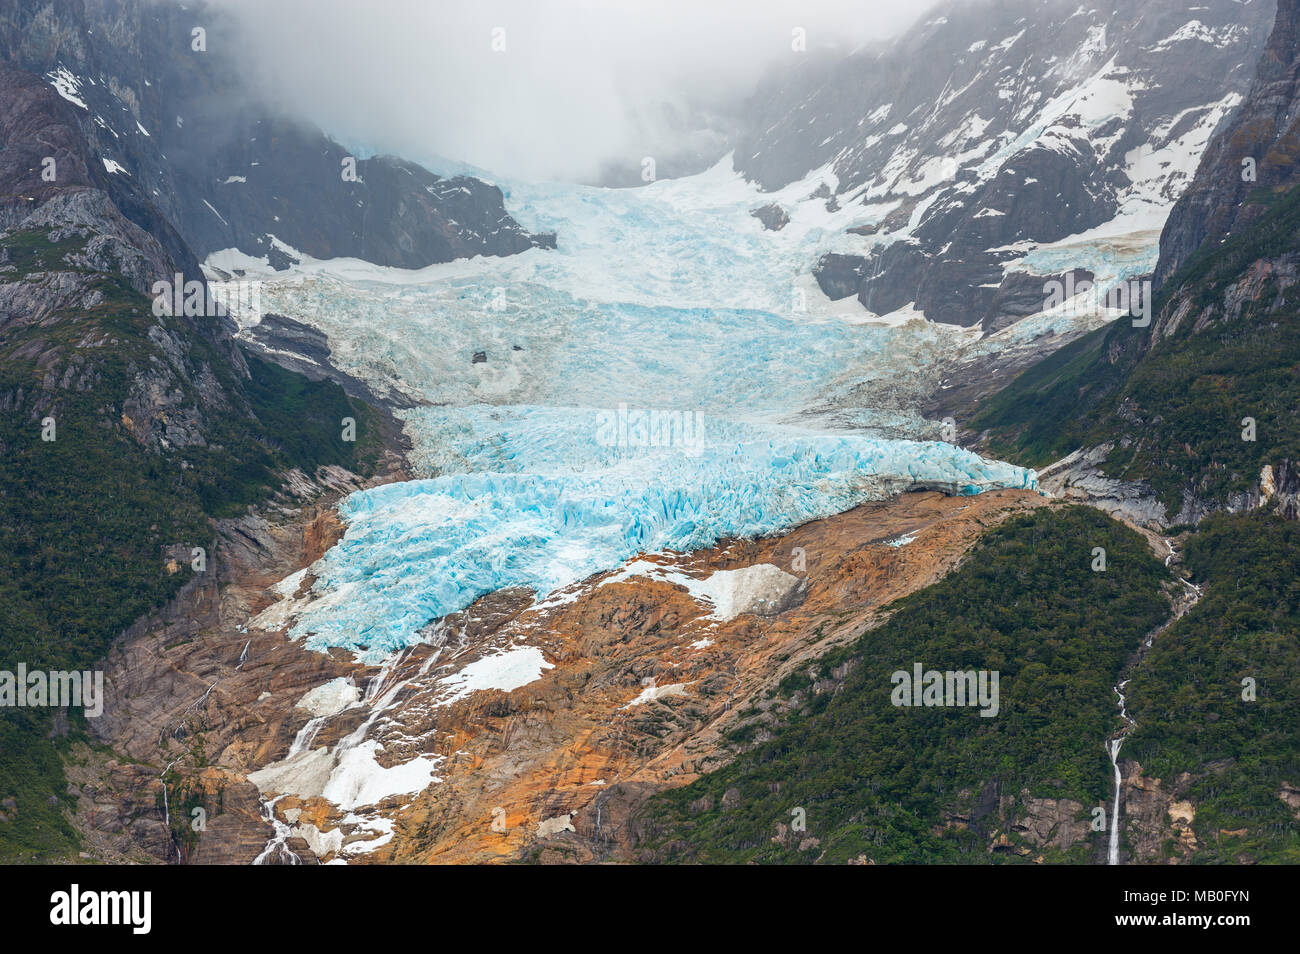 Close up of the Balmaceda glacier landscape near the Torres del Paine national park in Patagonia, Chile, South America. - Stock Image